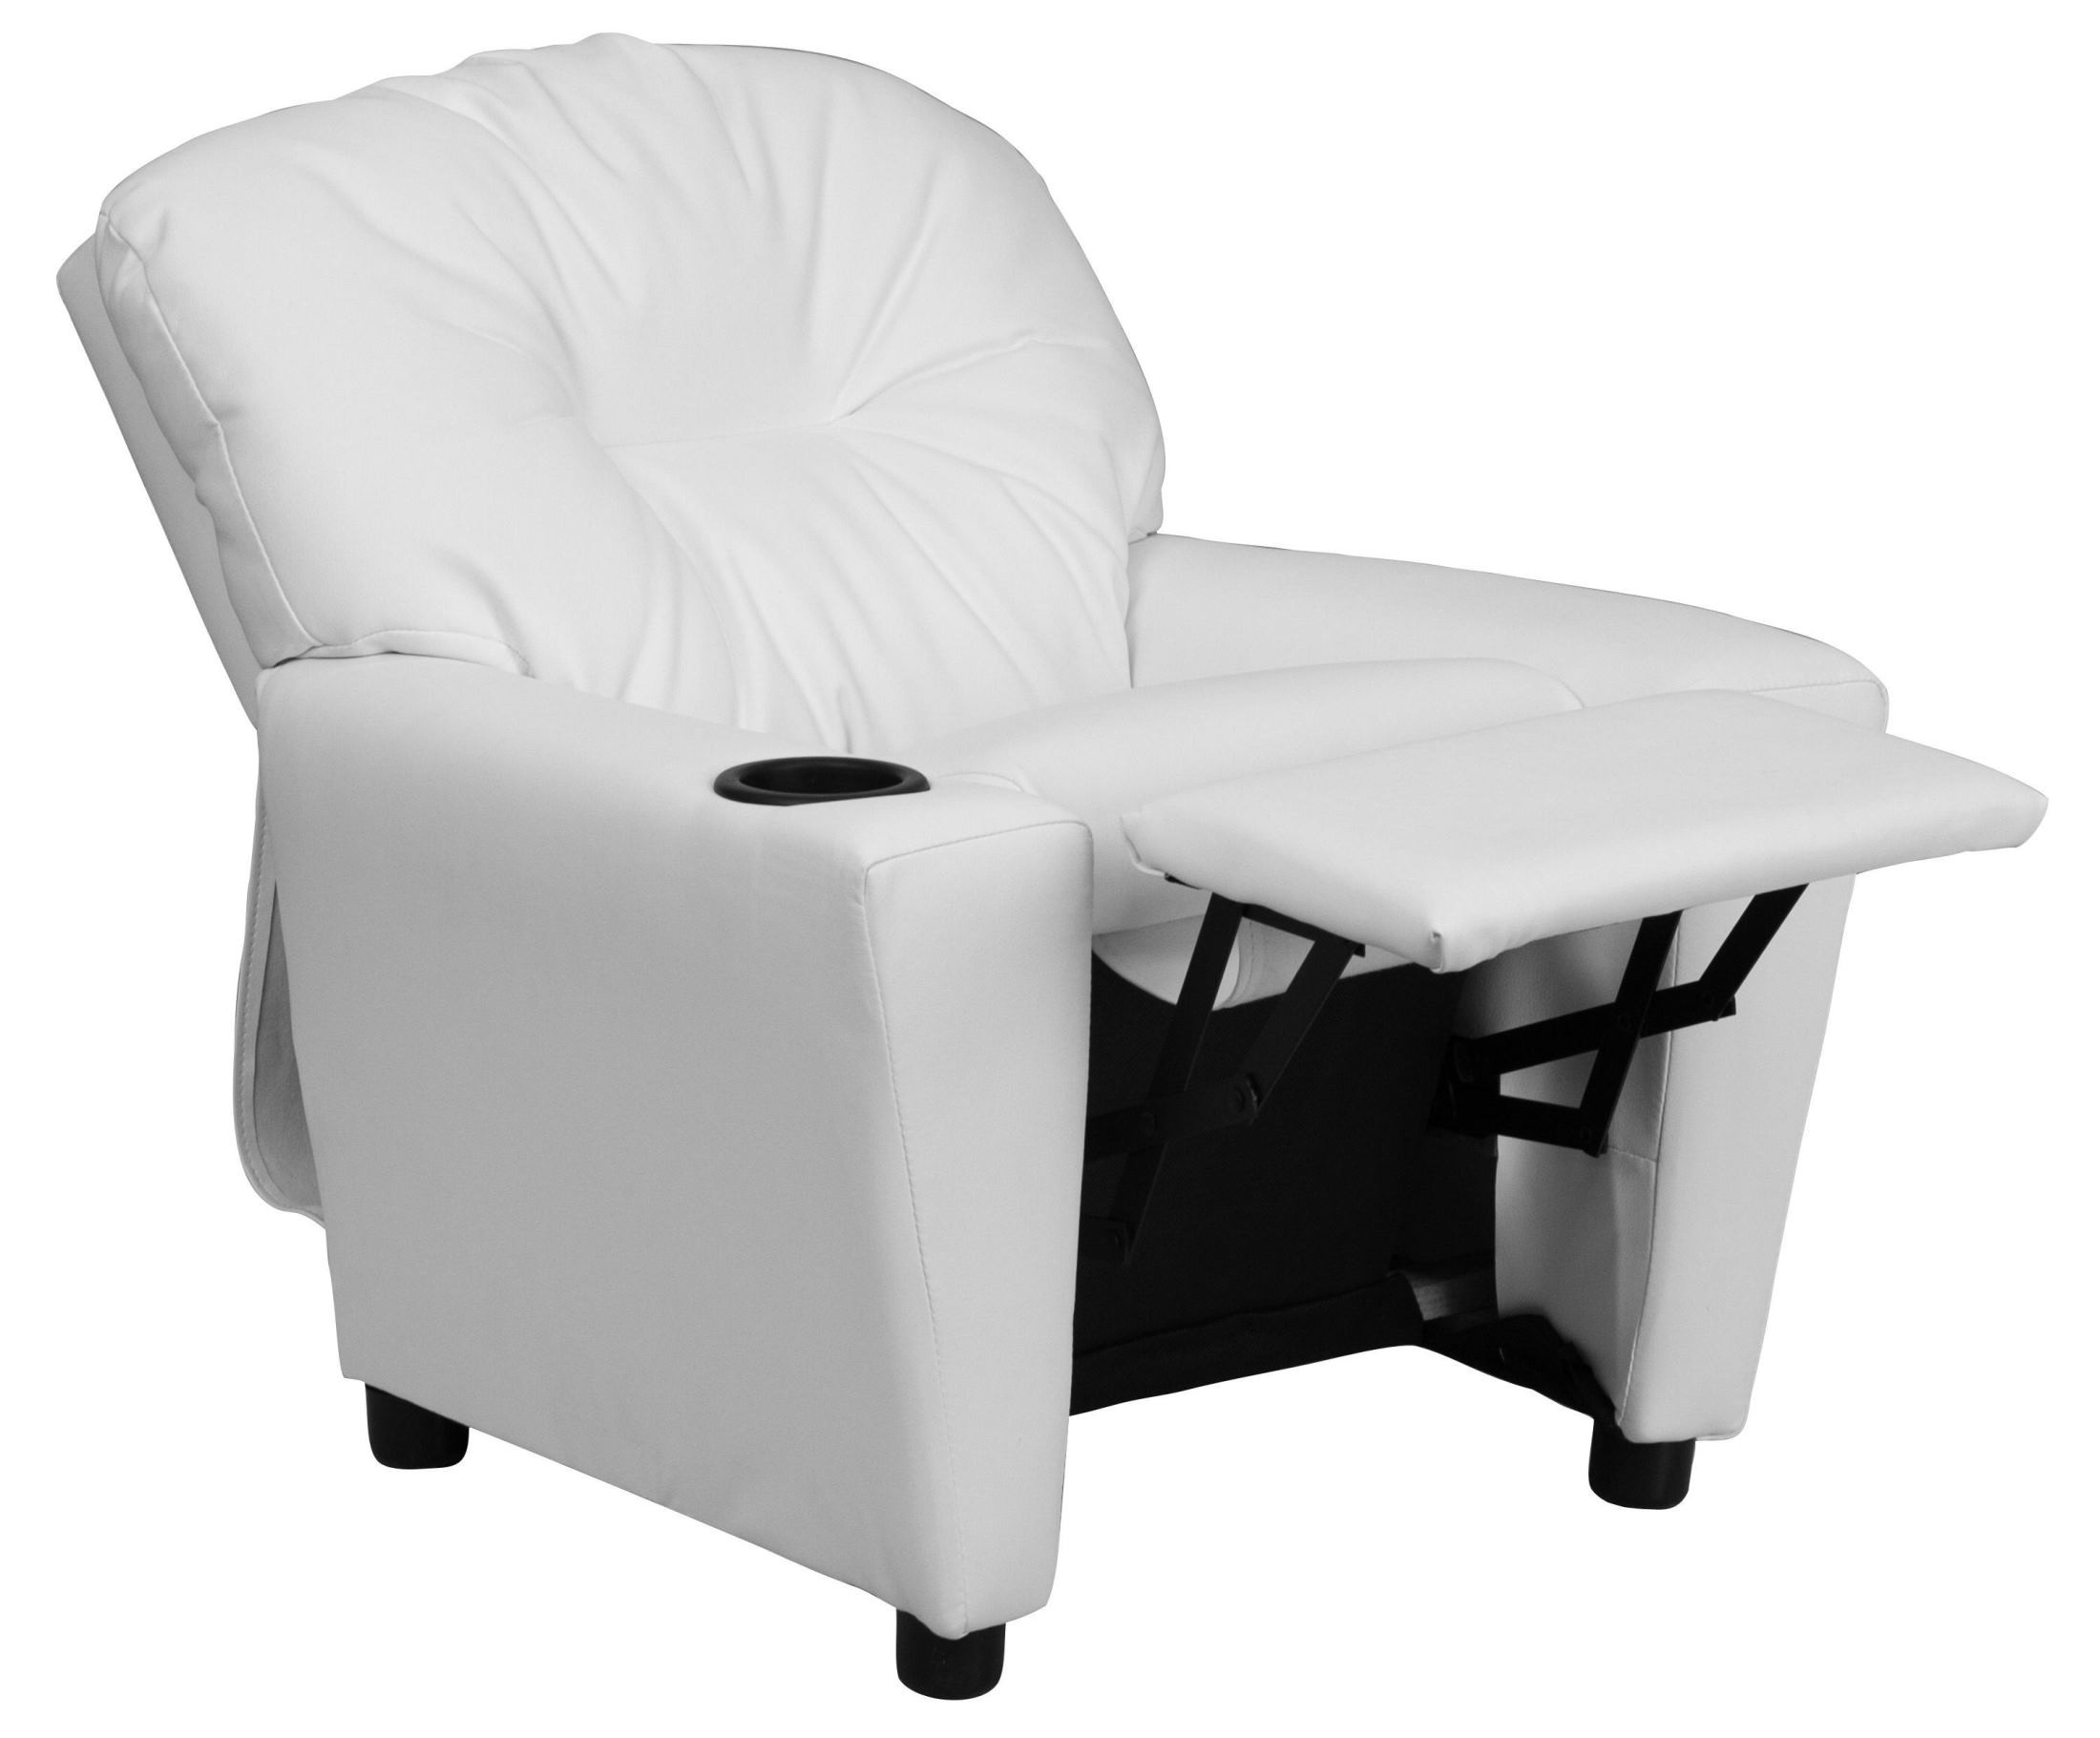 White Vinyl Kids Recliner With Cup Holder From Renegade